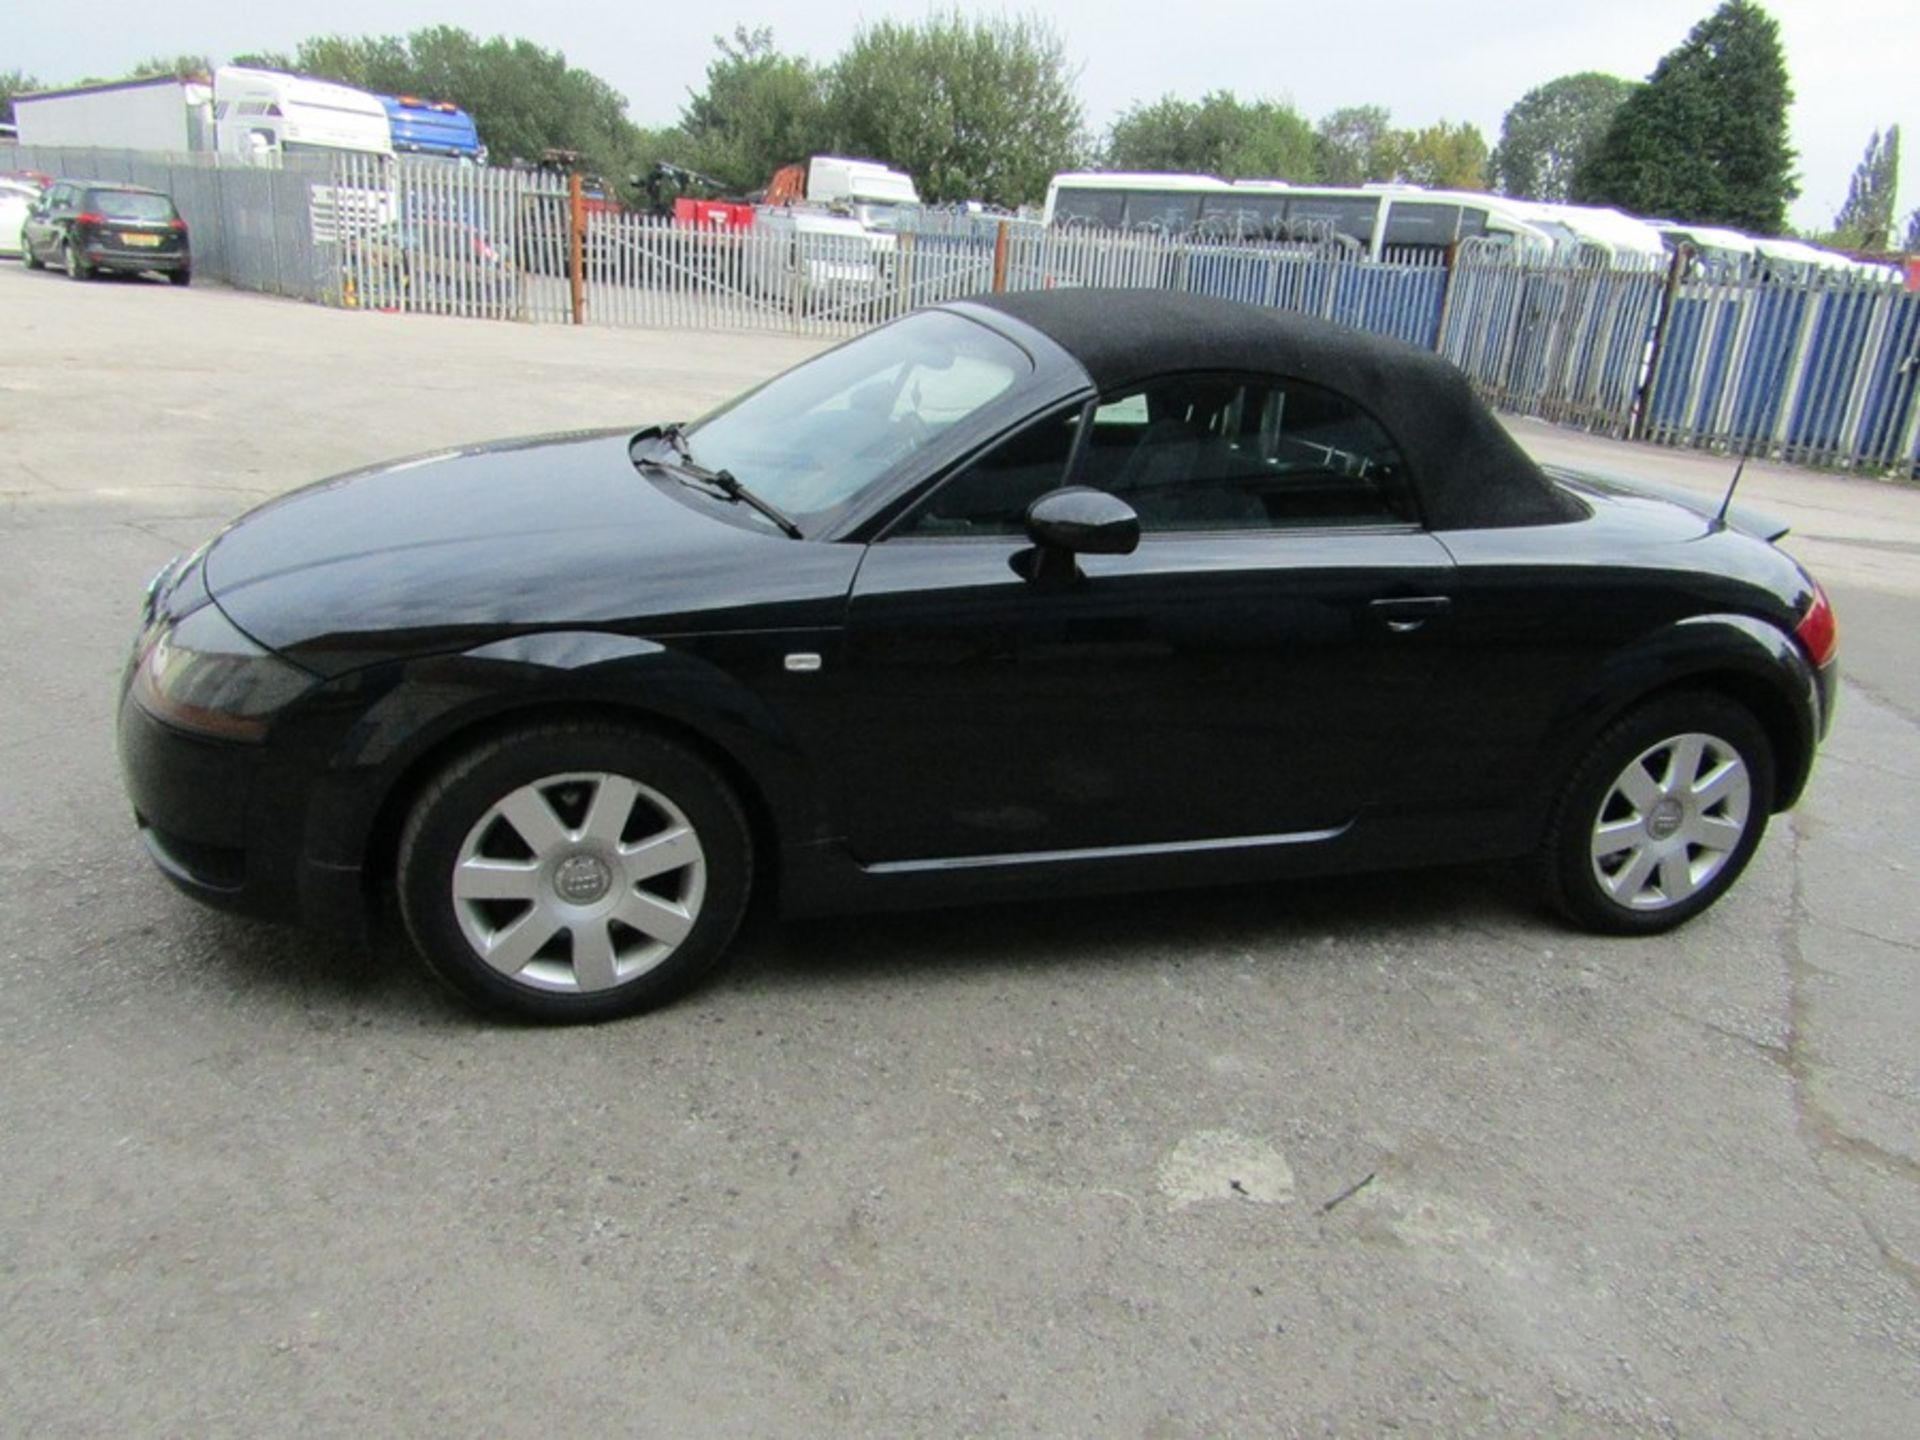 2005 Audi 1.8i Convertible roadster, 131,608 Miles (unchecked) MOT until 01/06/2021, Has part - Image 15 of 16